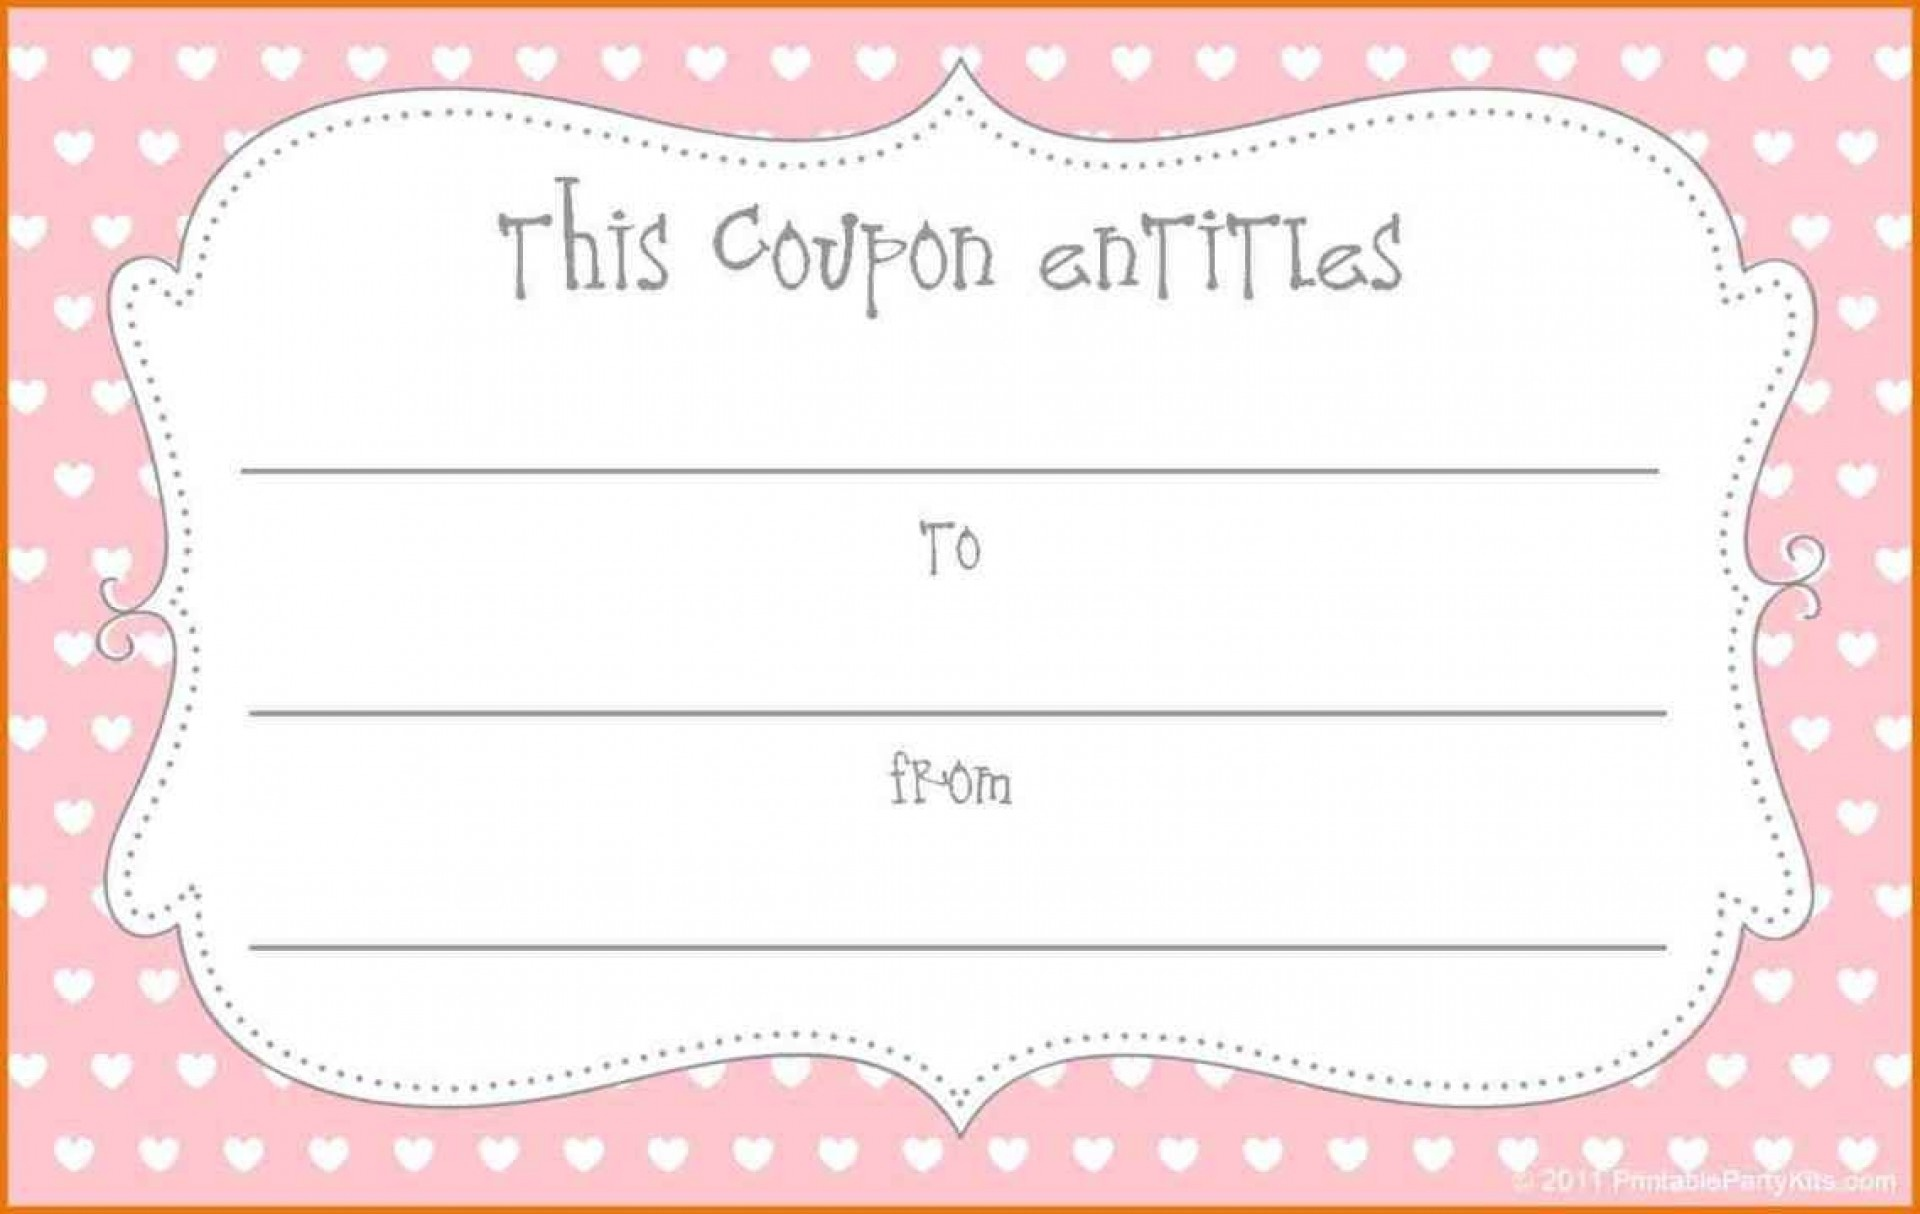 018 Make Your Own Coupon Template Ideas Free Printable Fantastic - Create Your Own Coupon Free Printable